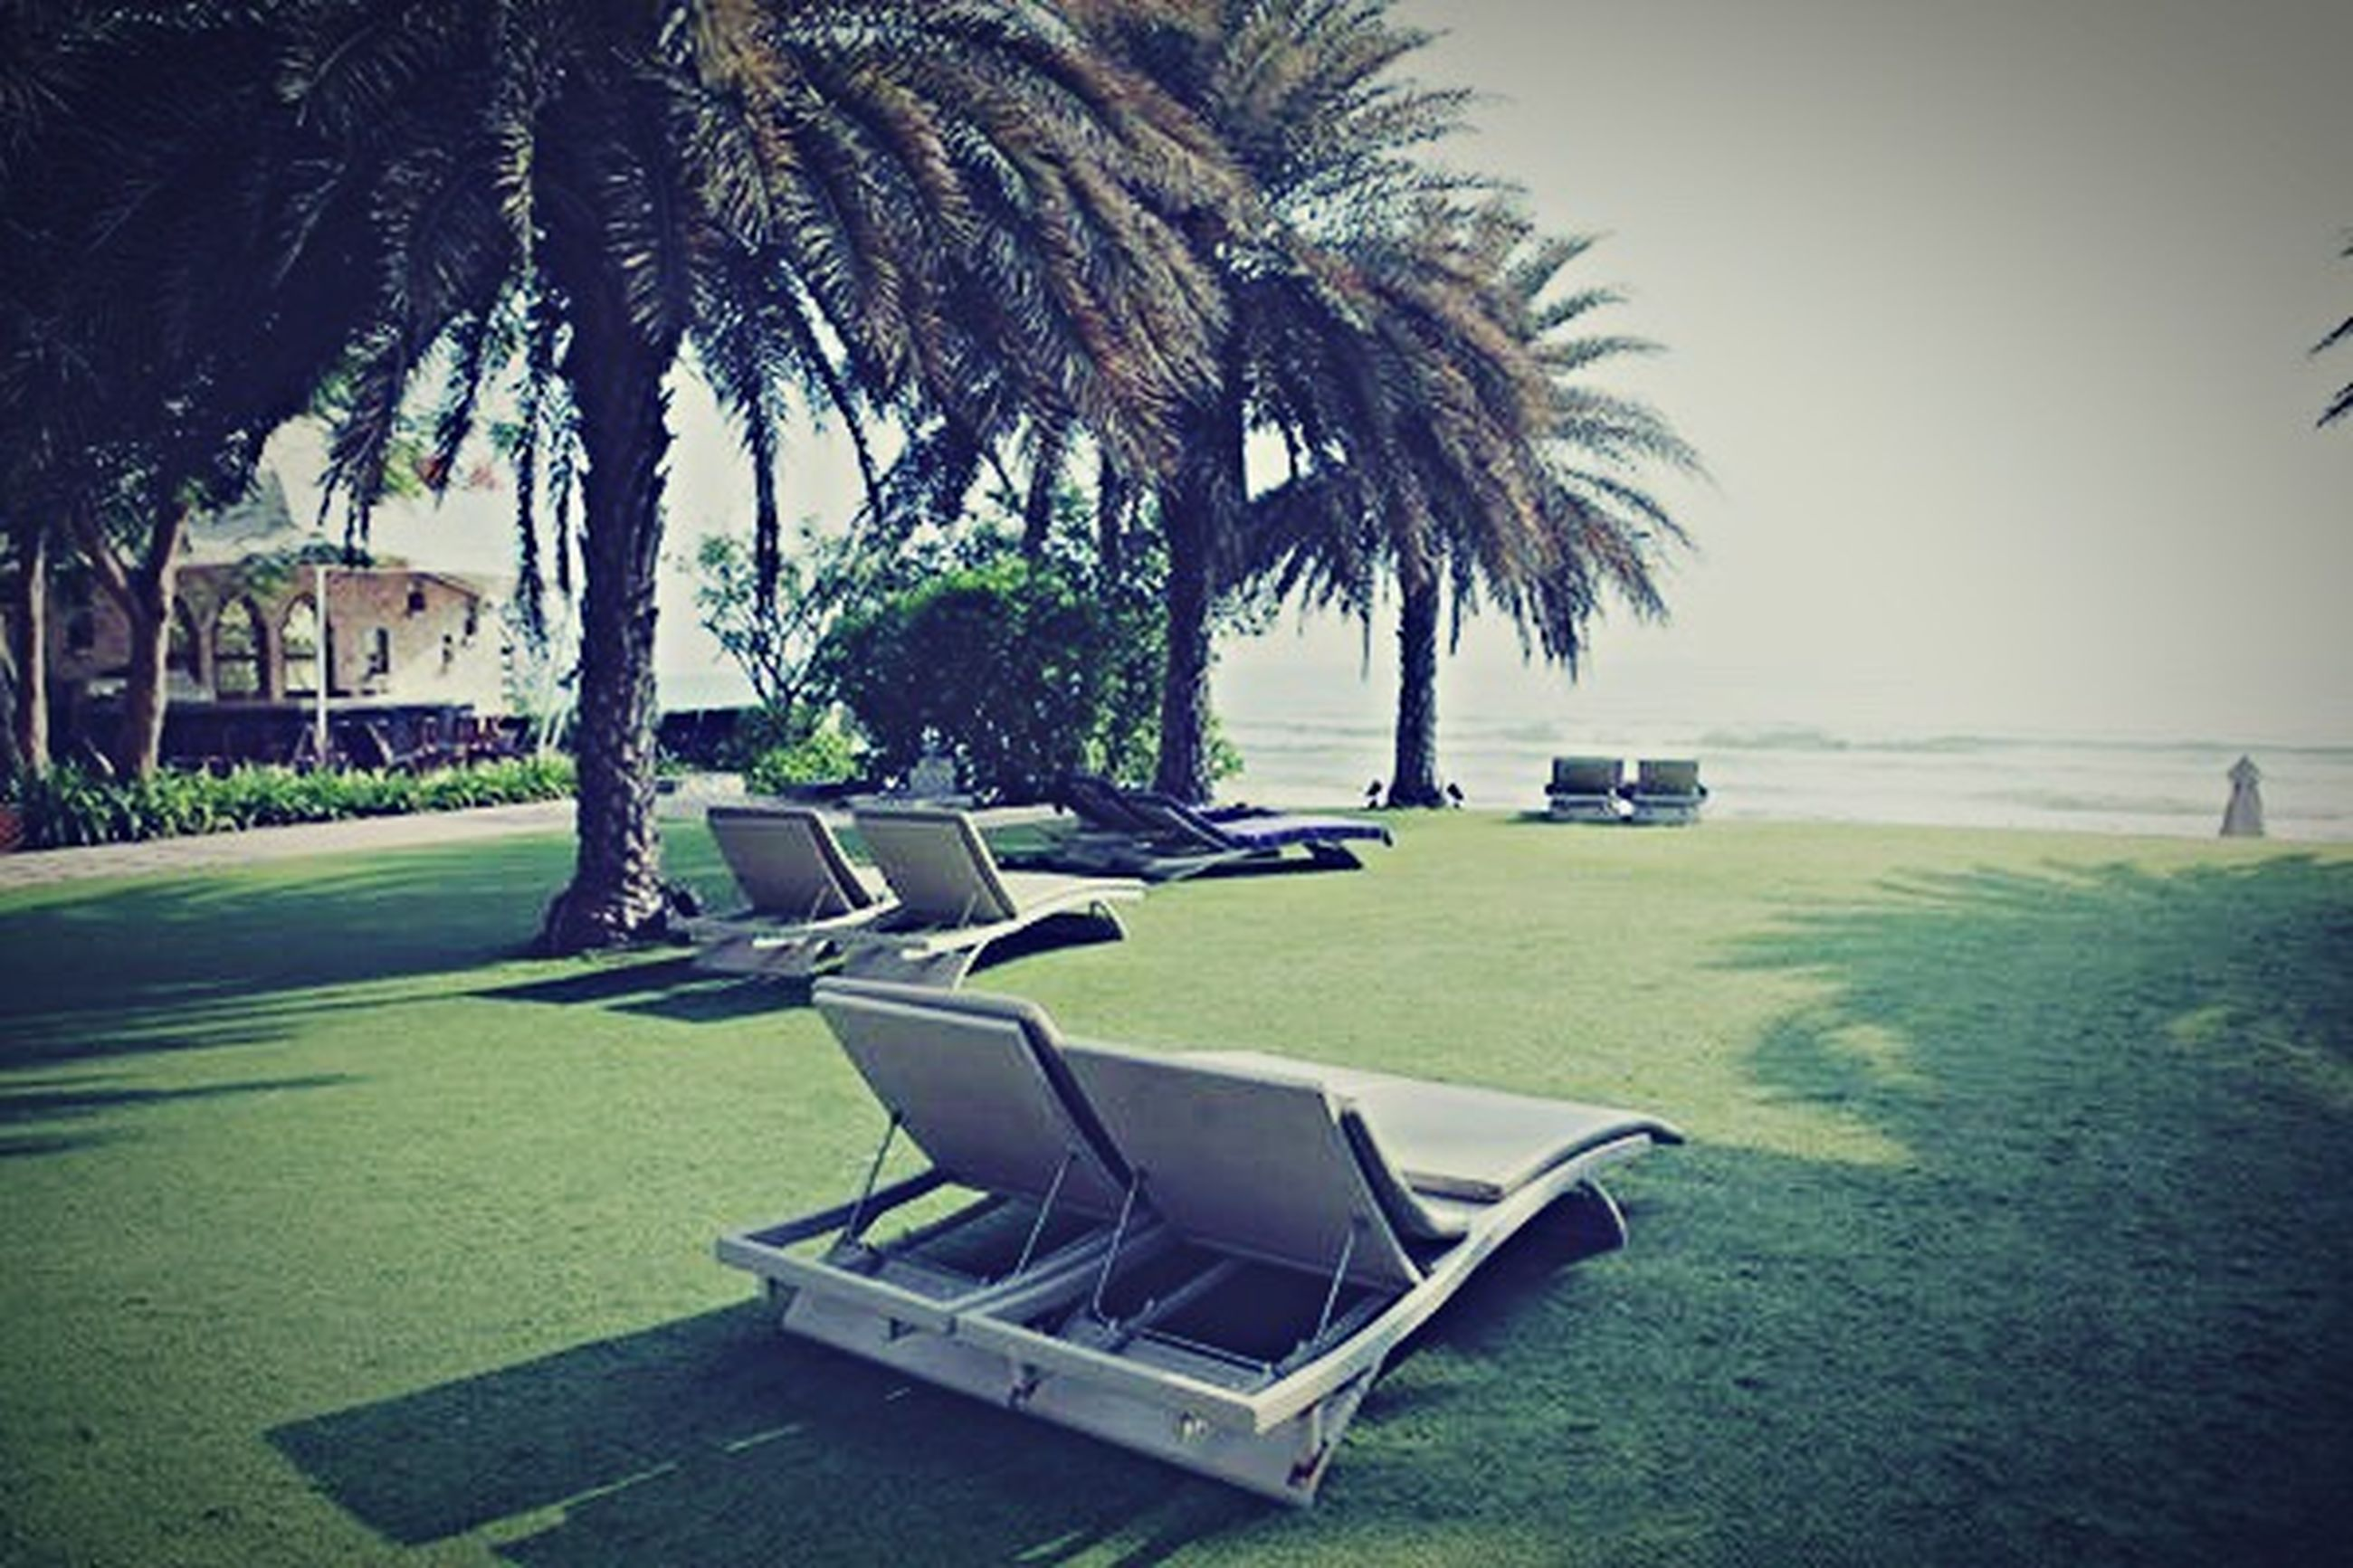 palm tree, tree, wireless technology, laptop, technology, no people, internet, outdoors, nature, day, green - golf course